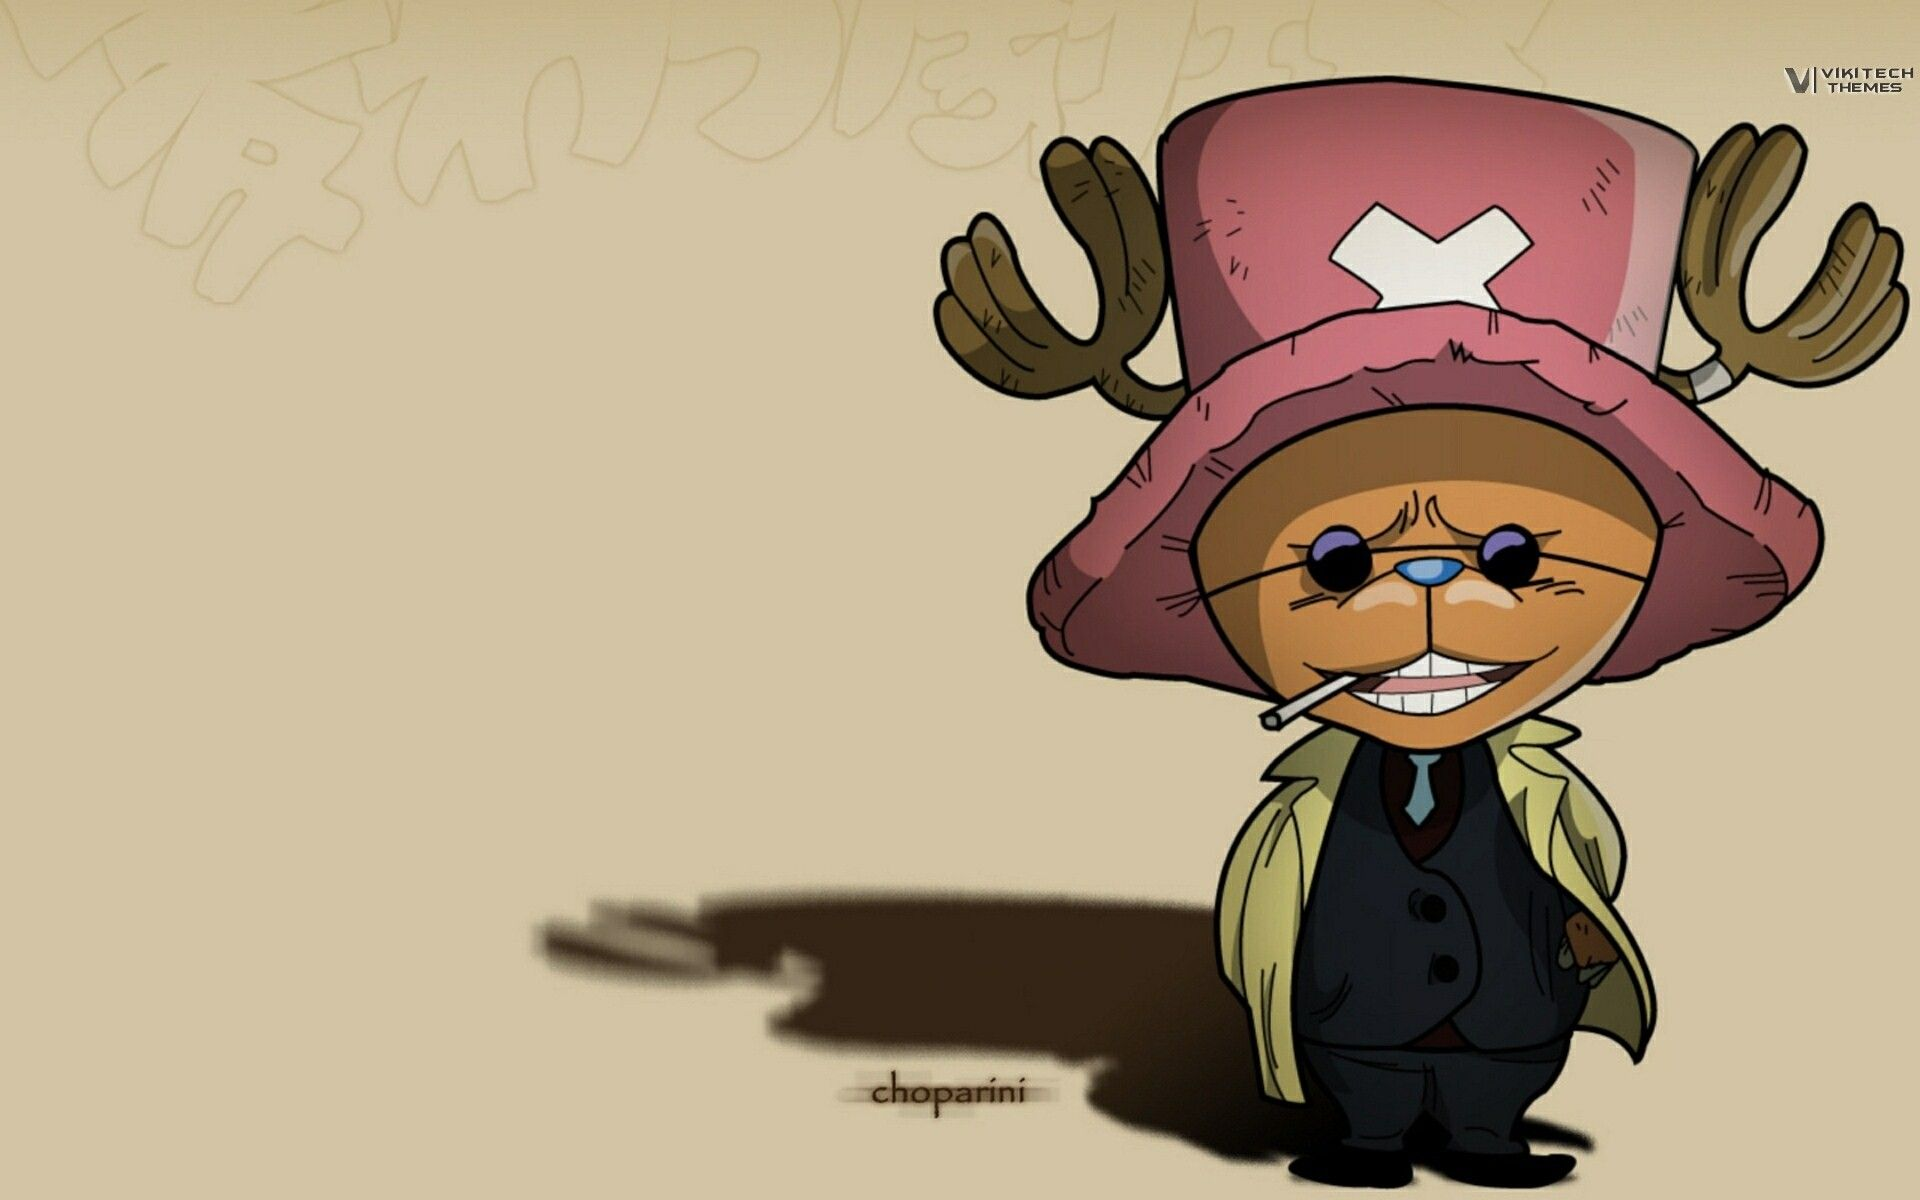 Tony Tony Chopper One Piece Anime Manga Hd Wallpaper For Pc Desktop